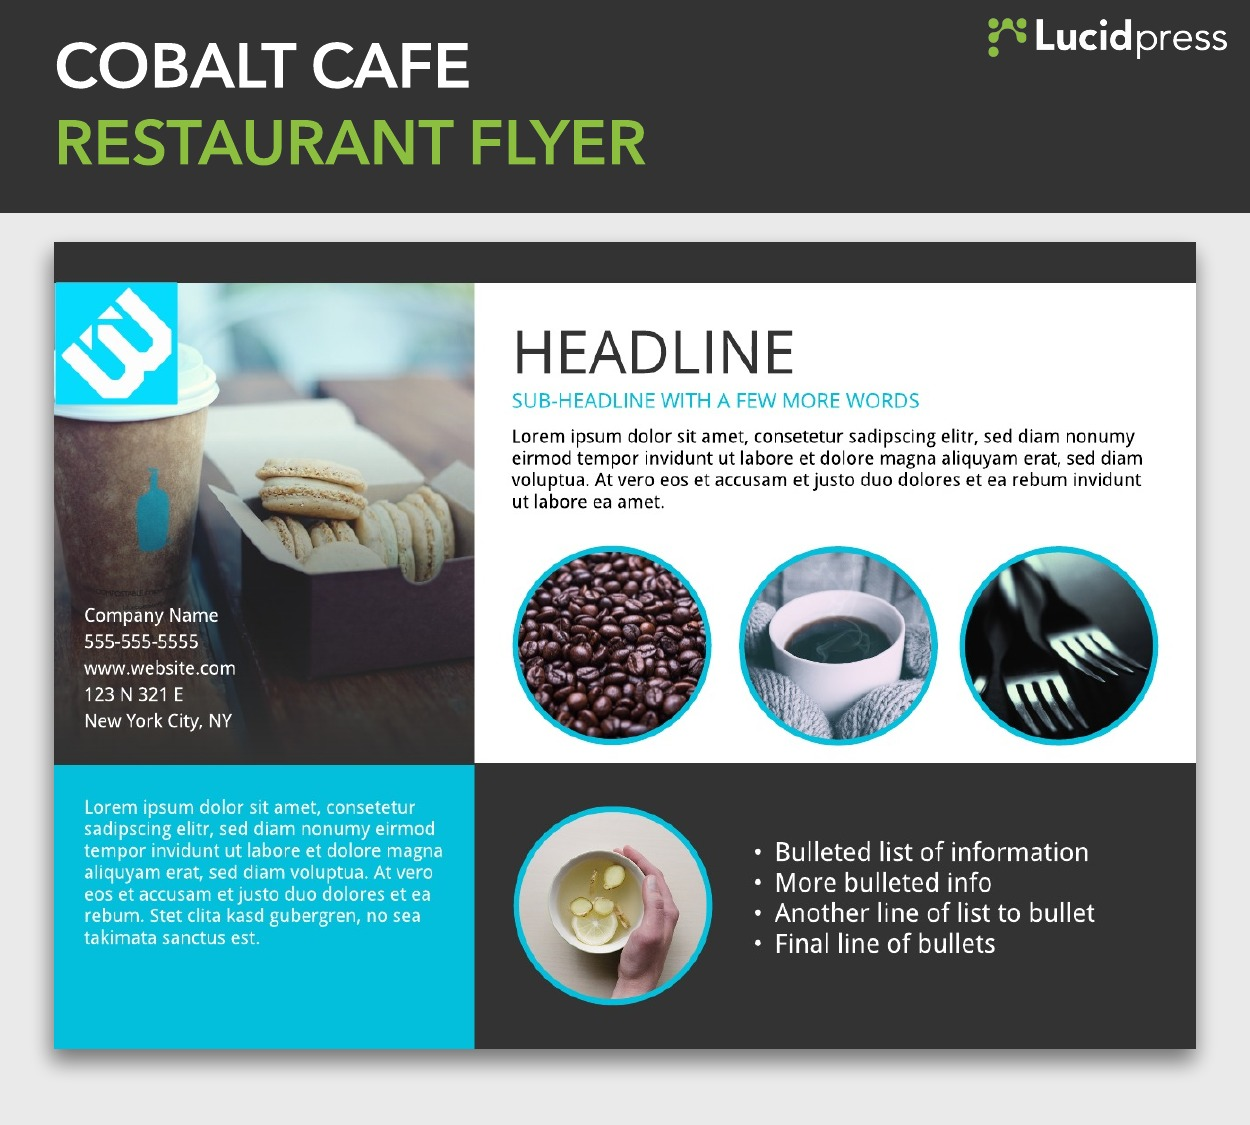 Interior Layout Design Ideas 17 flyer layout design ideas for your inspiration cobalt cafe restaurant flyer